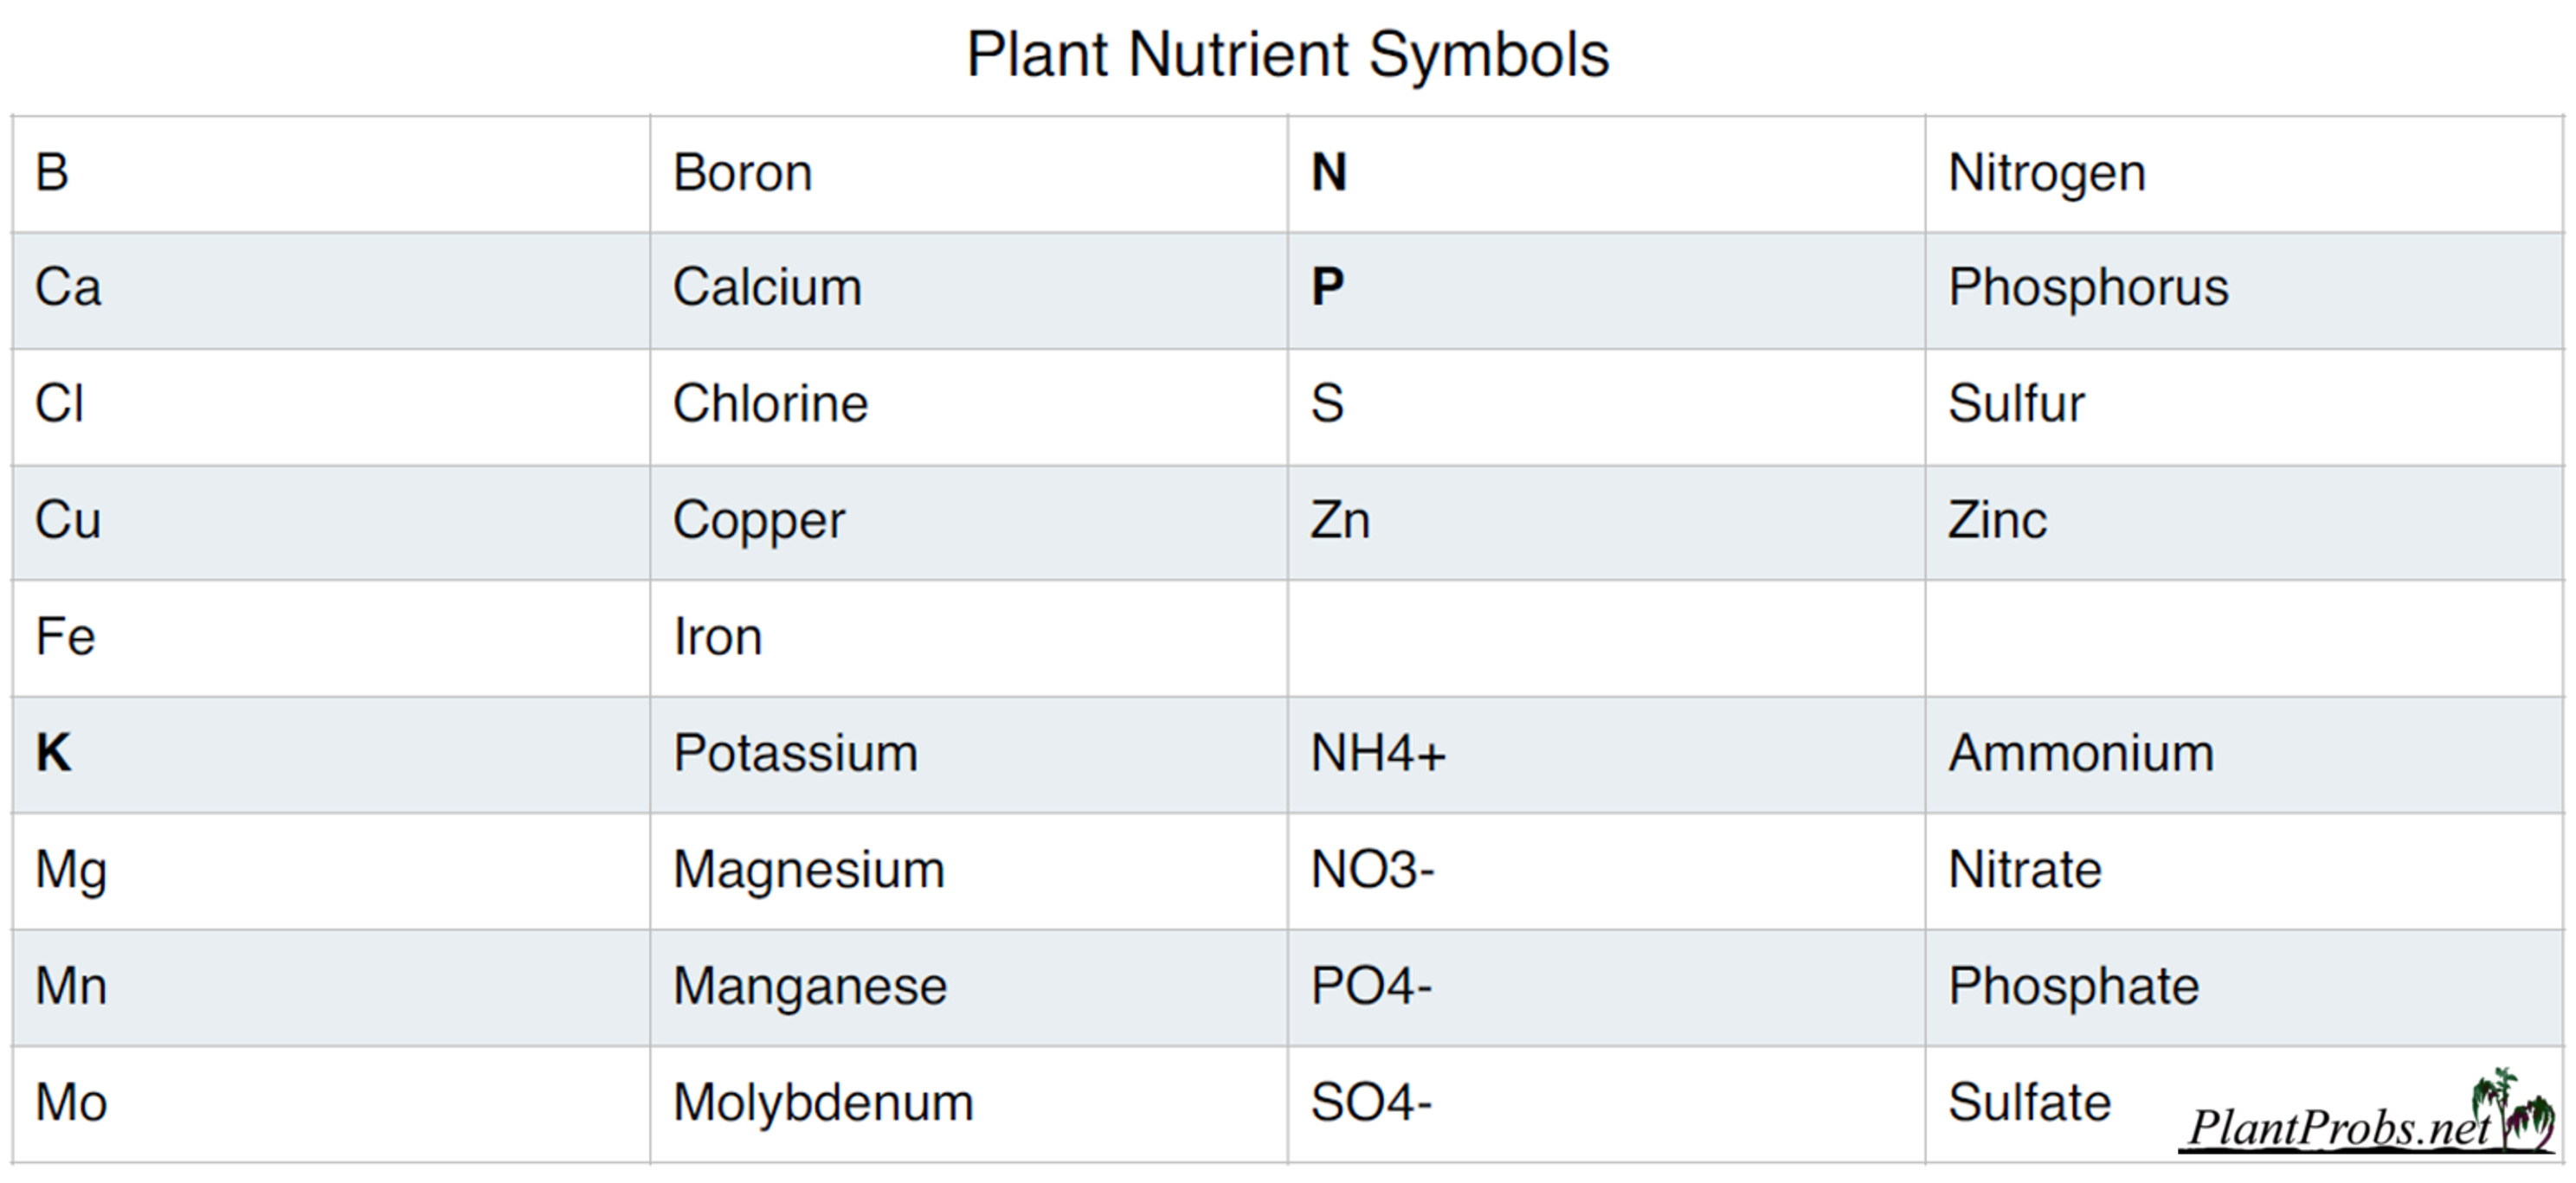 Chemical symbols of plant nutrients